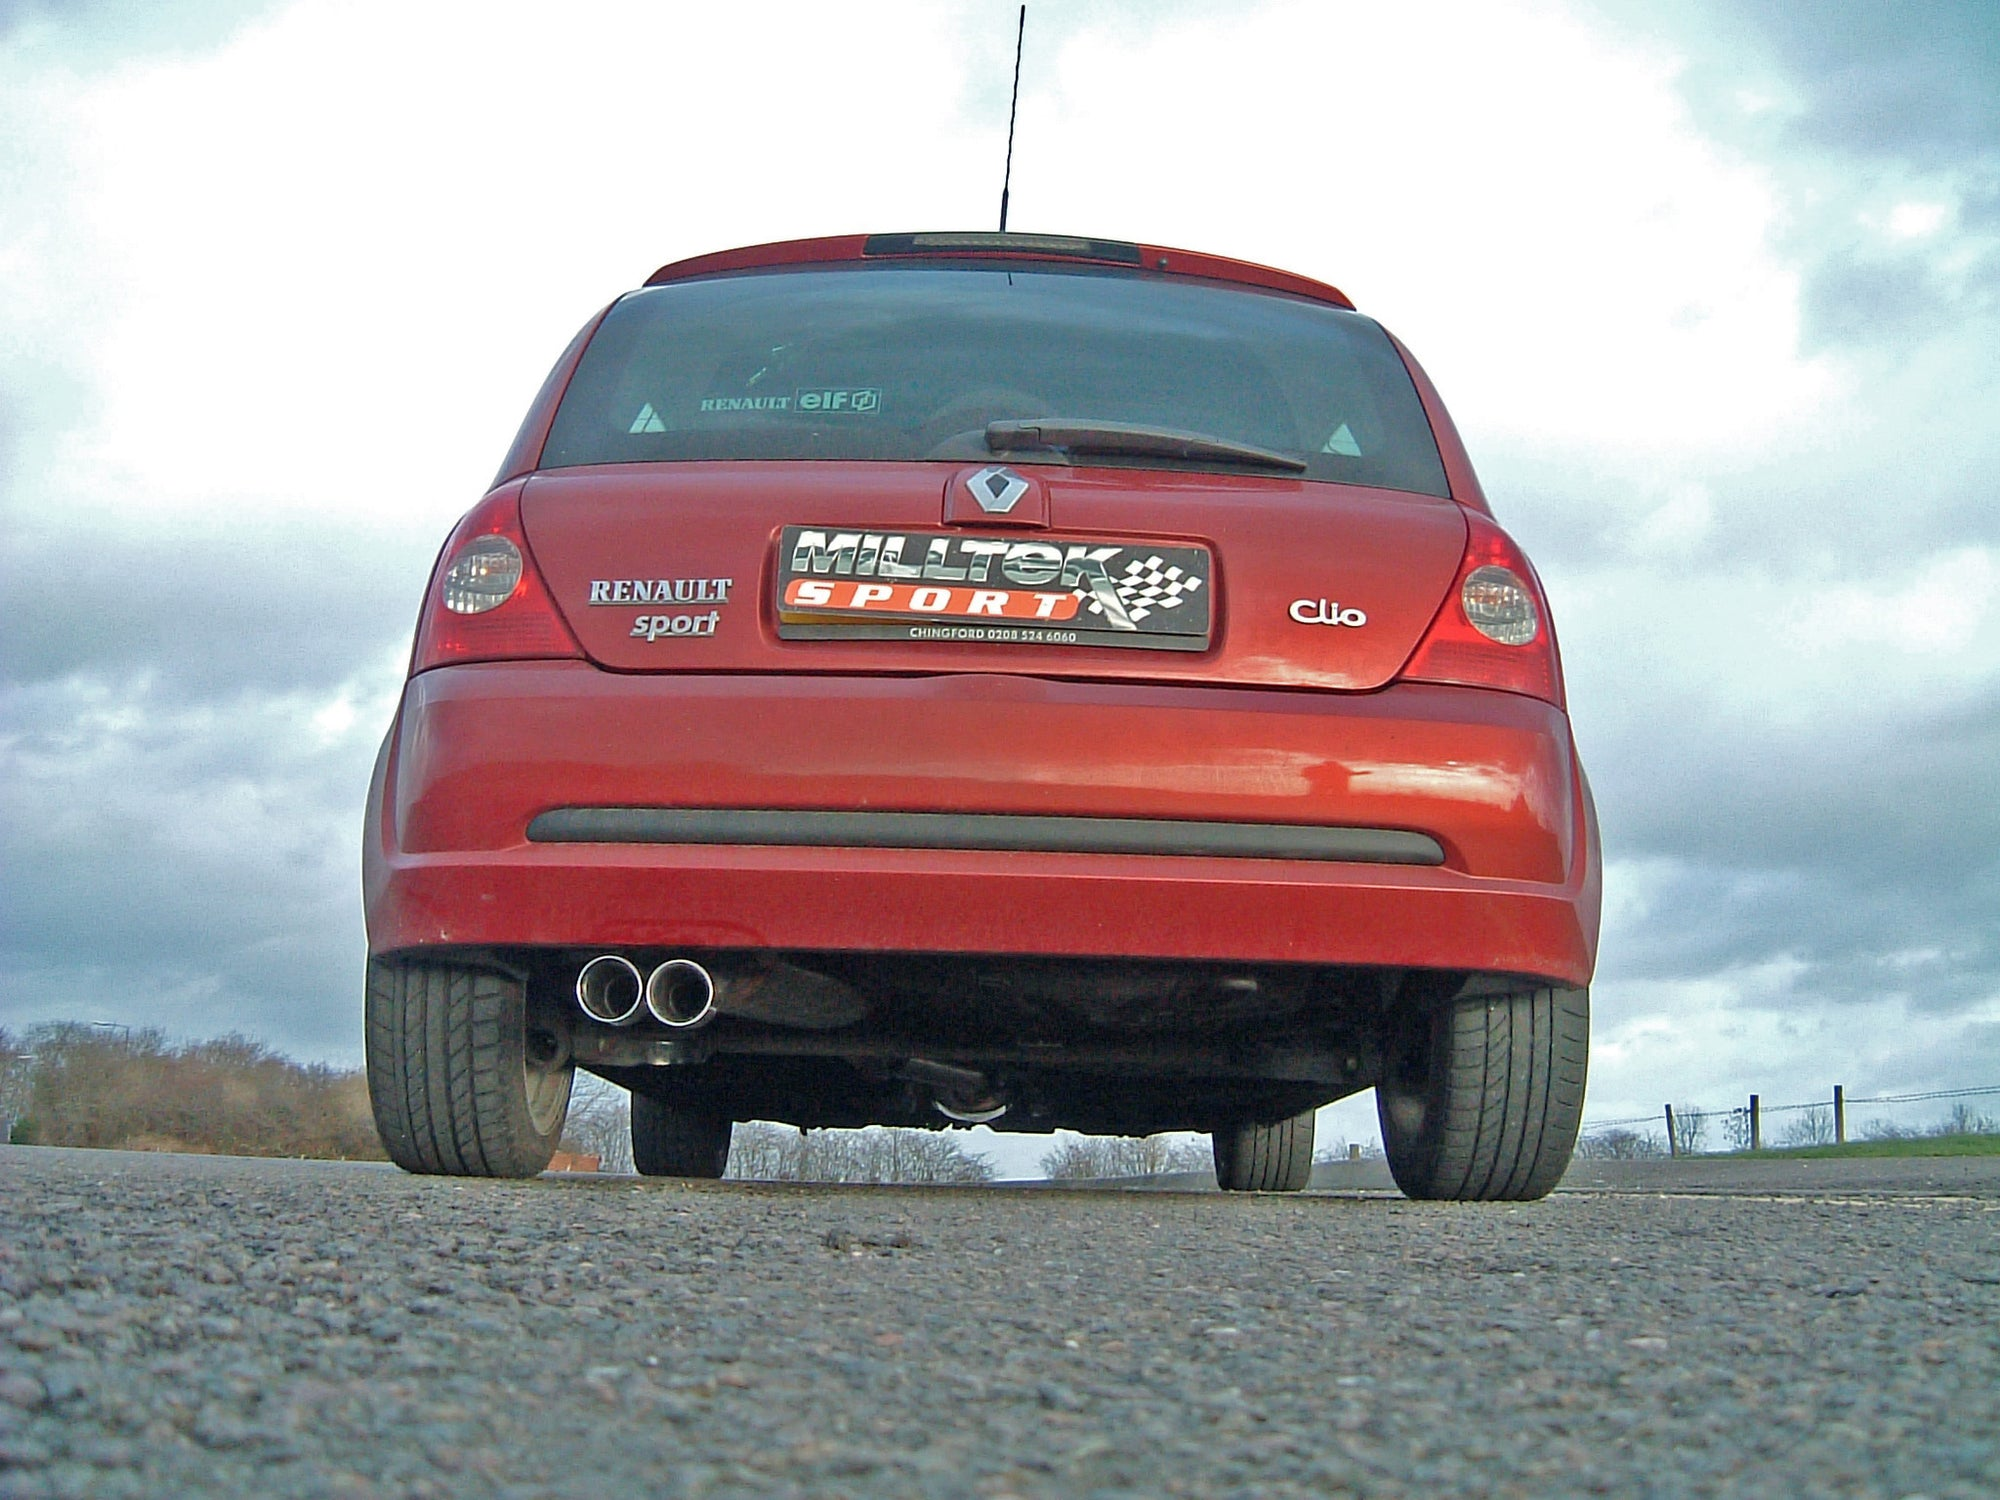 Milltek Exhaust Renault Clio 172 2.0 16v Full System with Twin 76 2mm Special tailpipe (SSXRN102)